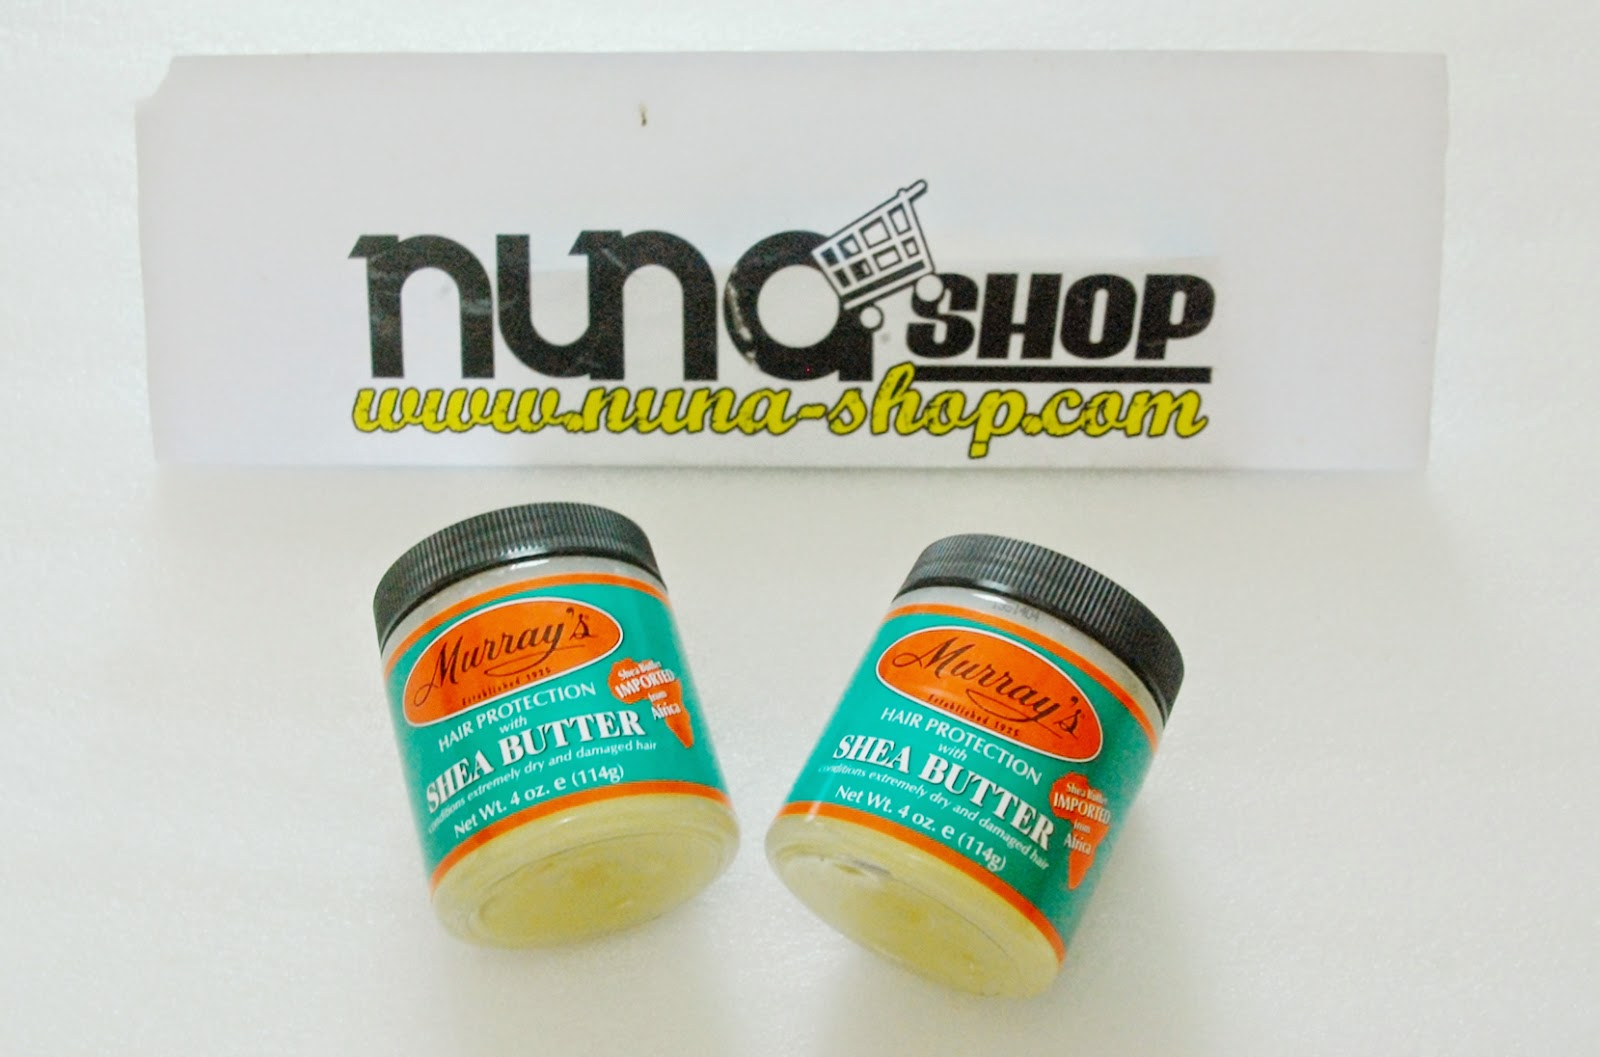 Nuna Shop Jual Murray's Hair Protection with Shea Butter